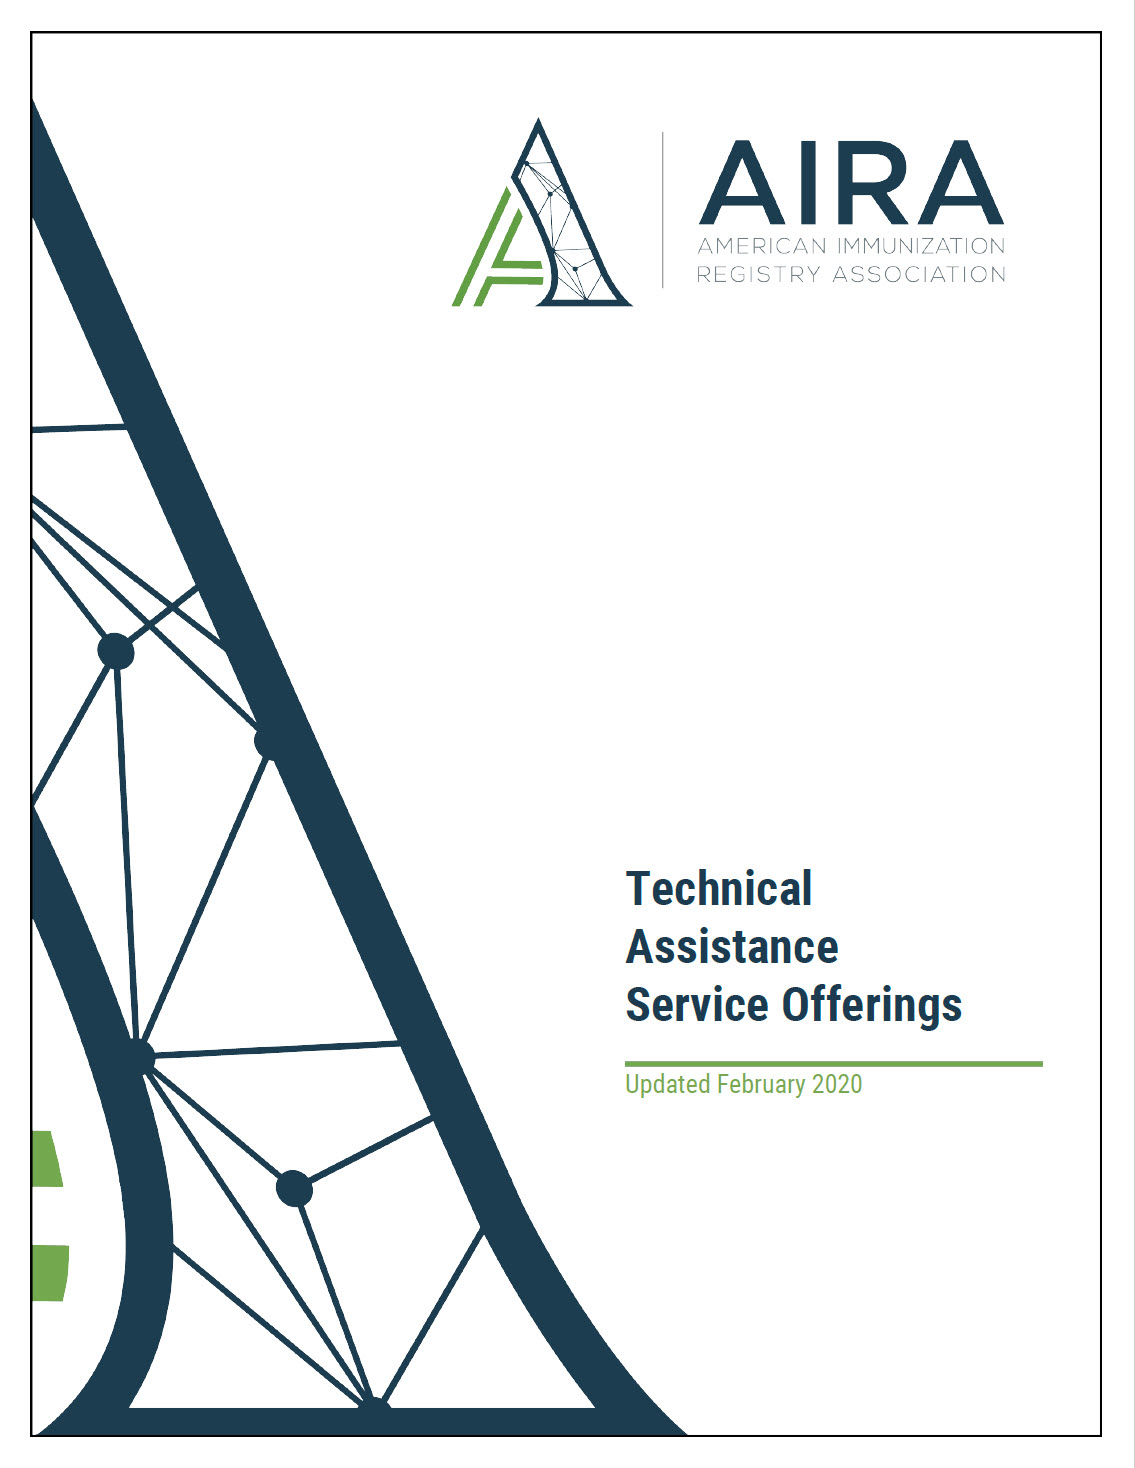 Technical Assistance Service Offerings